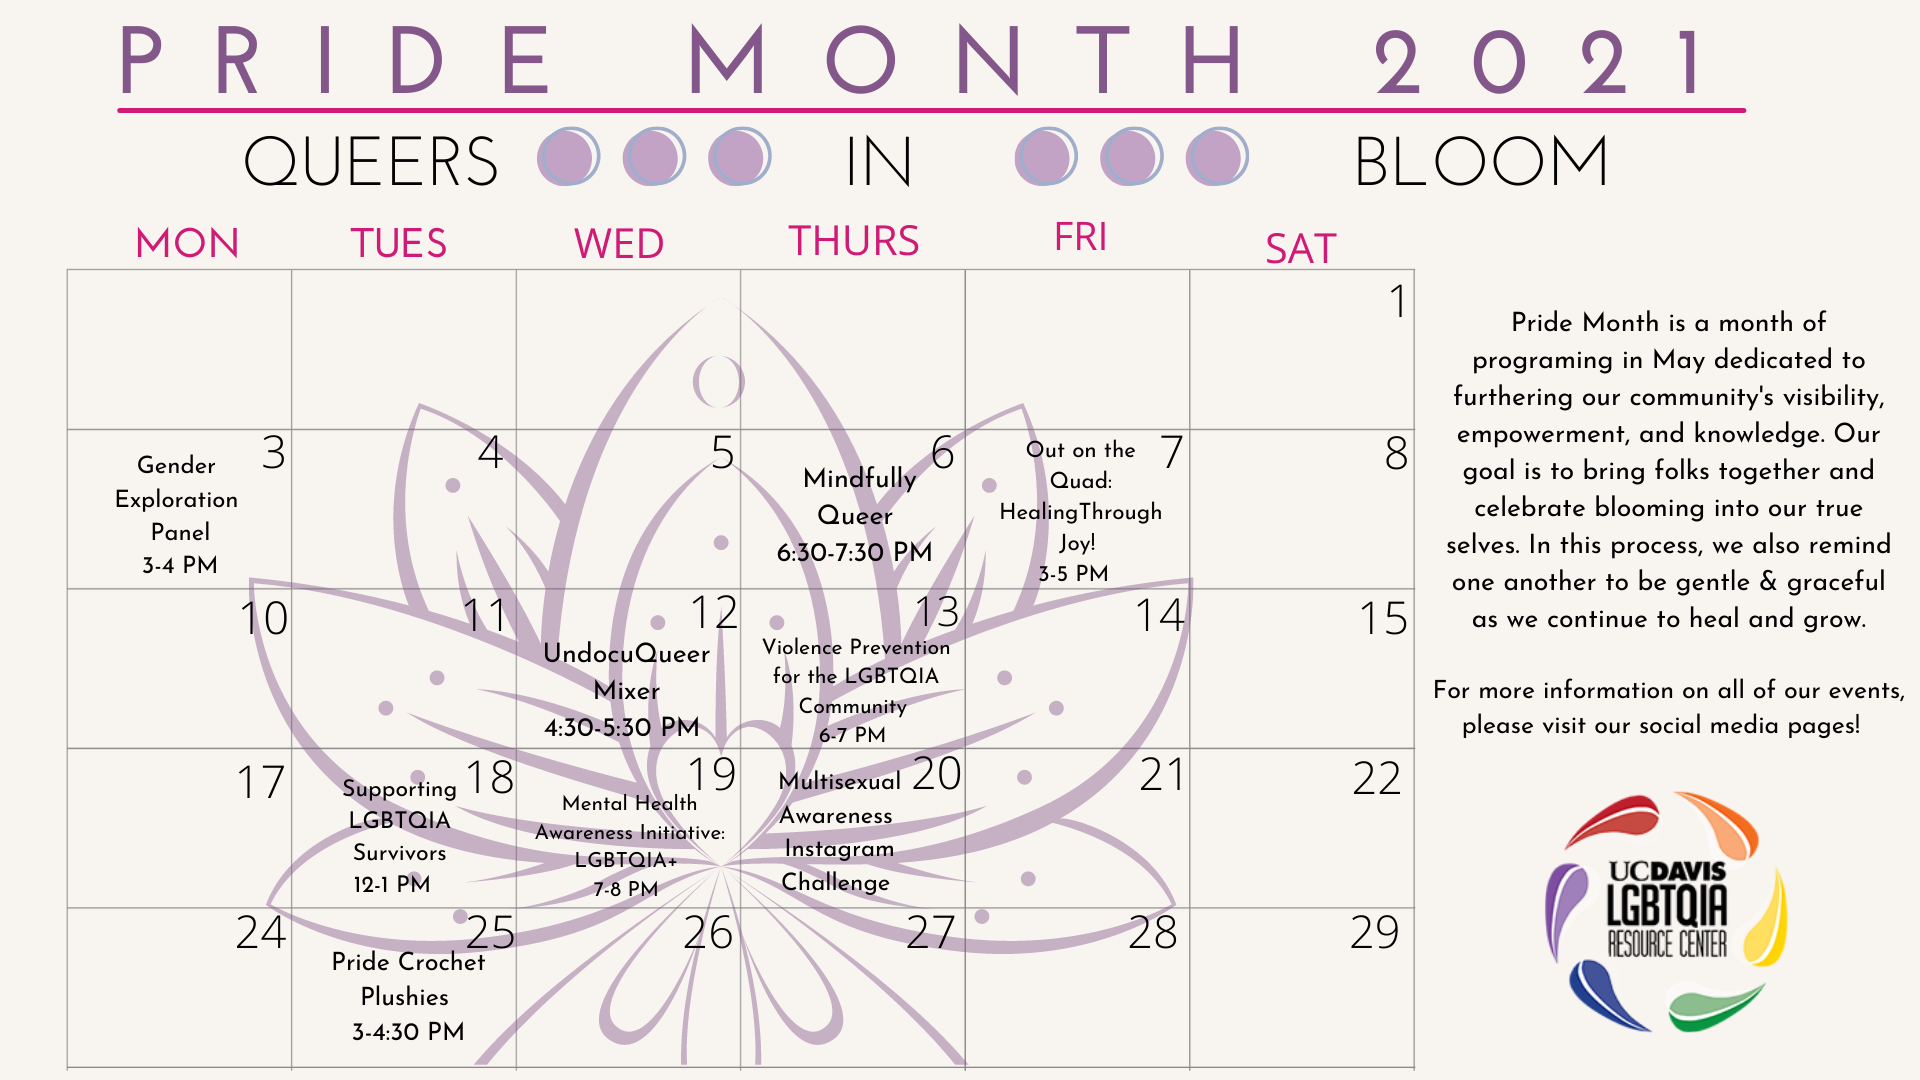 beige background calendar with a lotus inlaid in center. At the top next to an image of a moon cycle are the words: Pride Month 2021, Queers in Bloom.